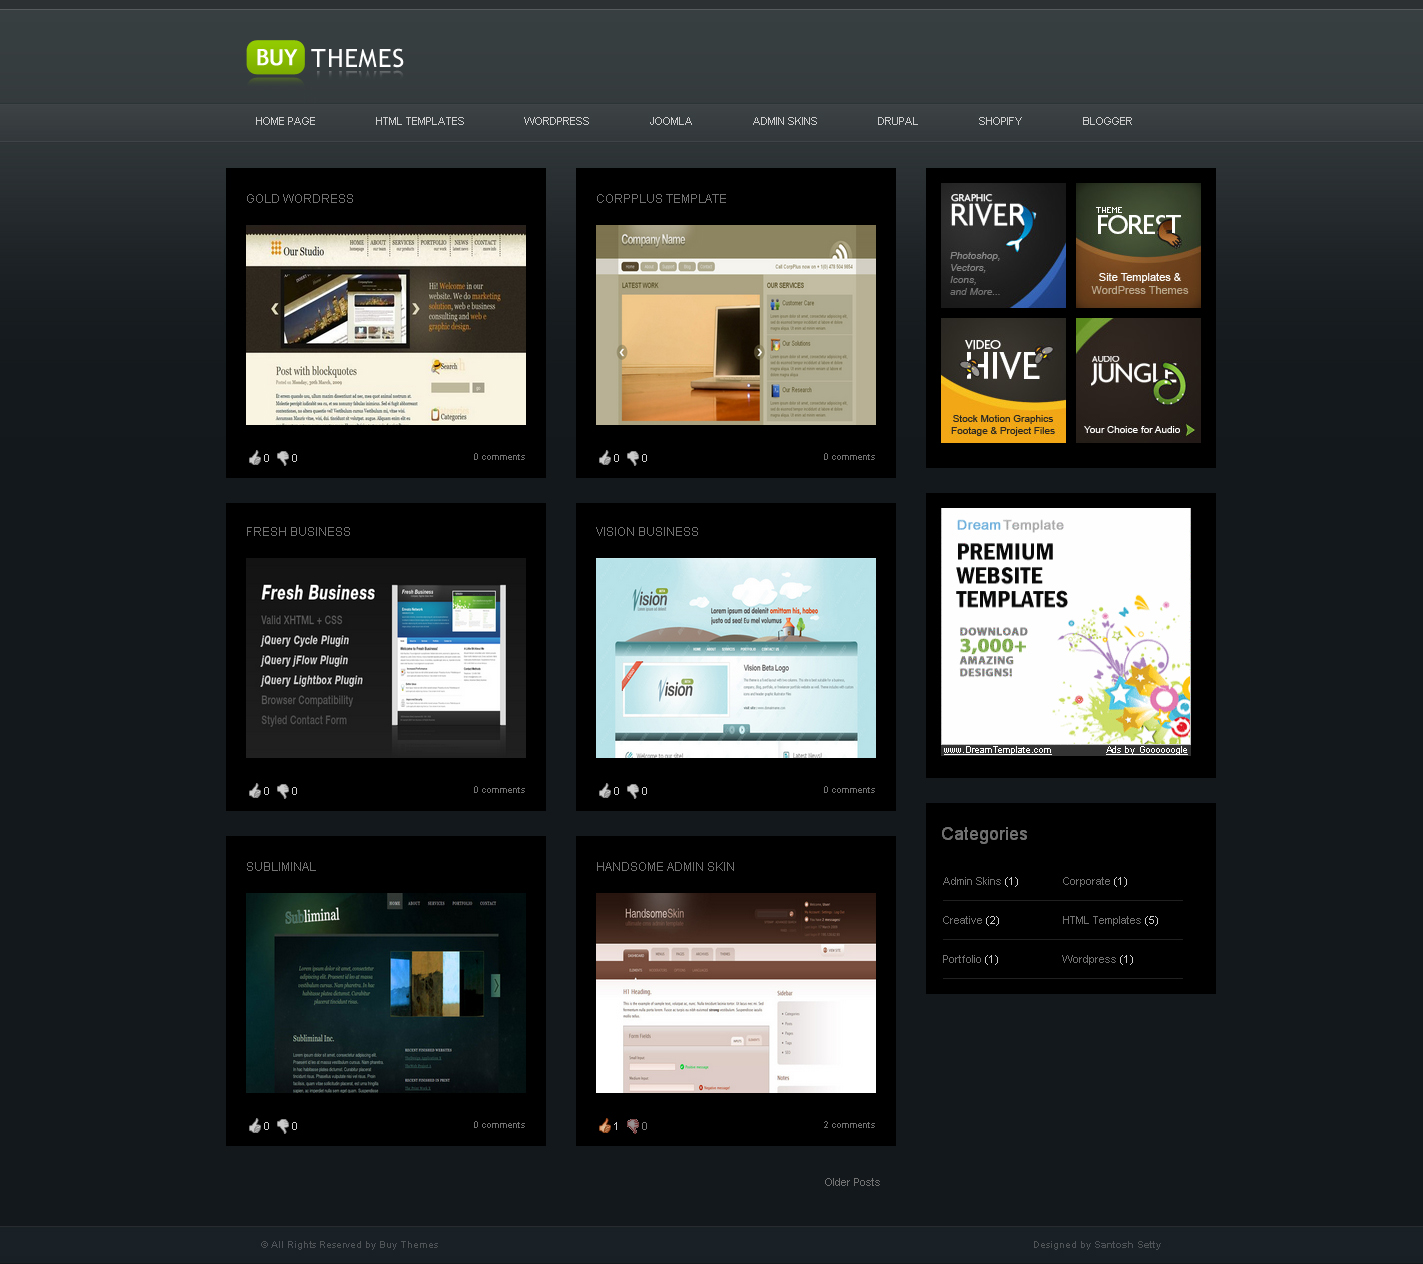 Free Download Buy Themes - Blogger Gallery Template Nulled Latest Version